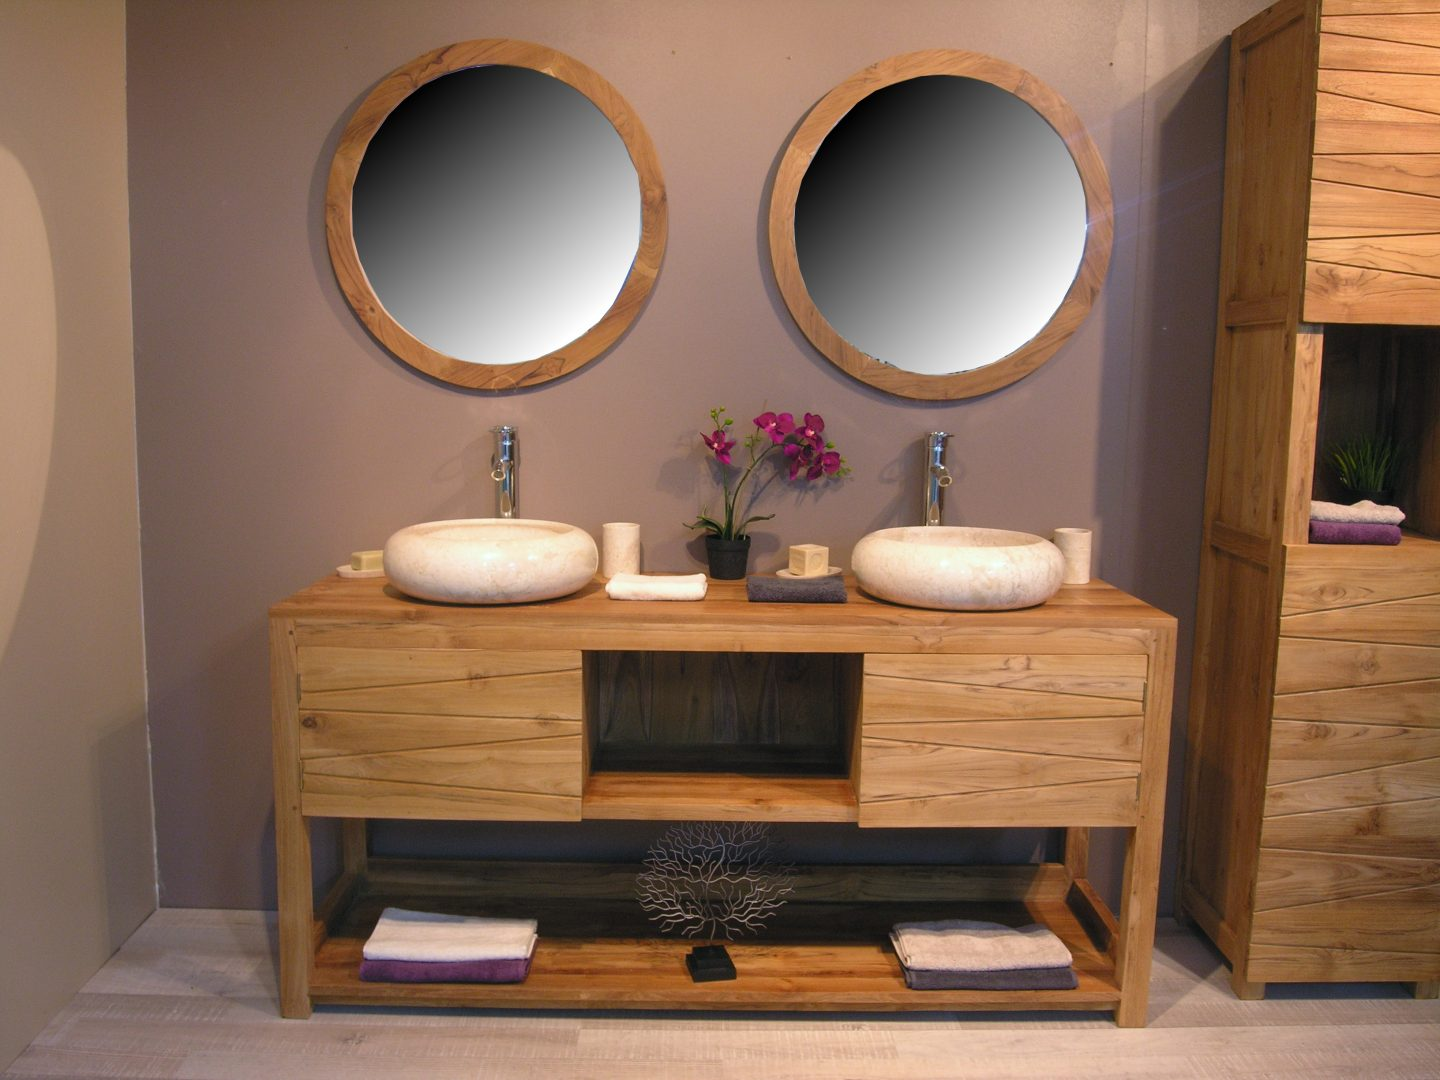 Cuarto de ba o familiar im genes y fotos for Cocktail scandinave miroir